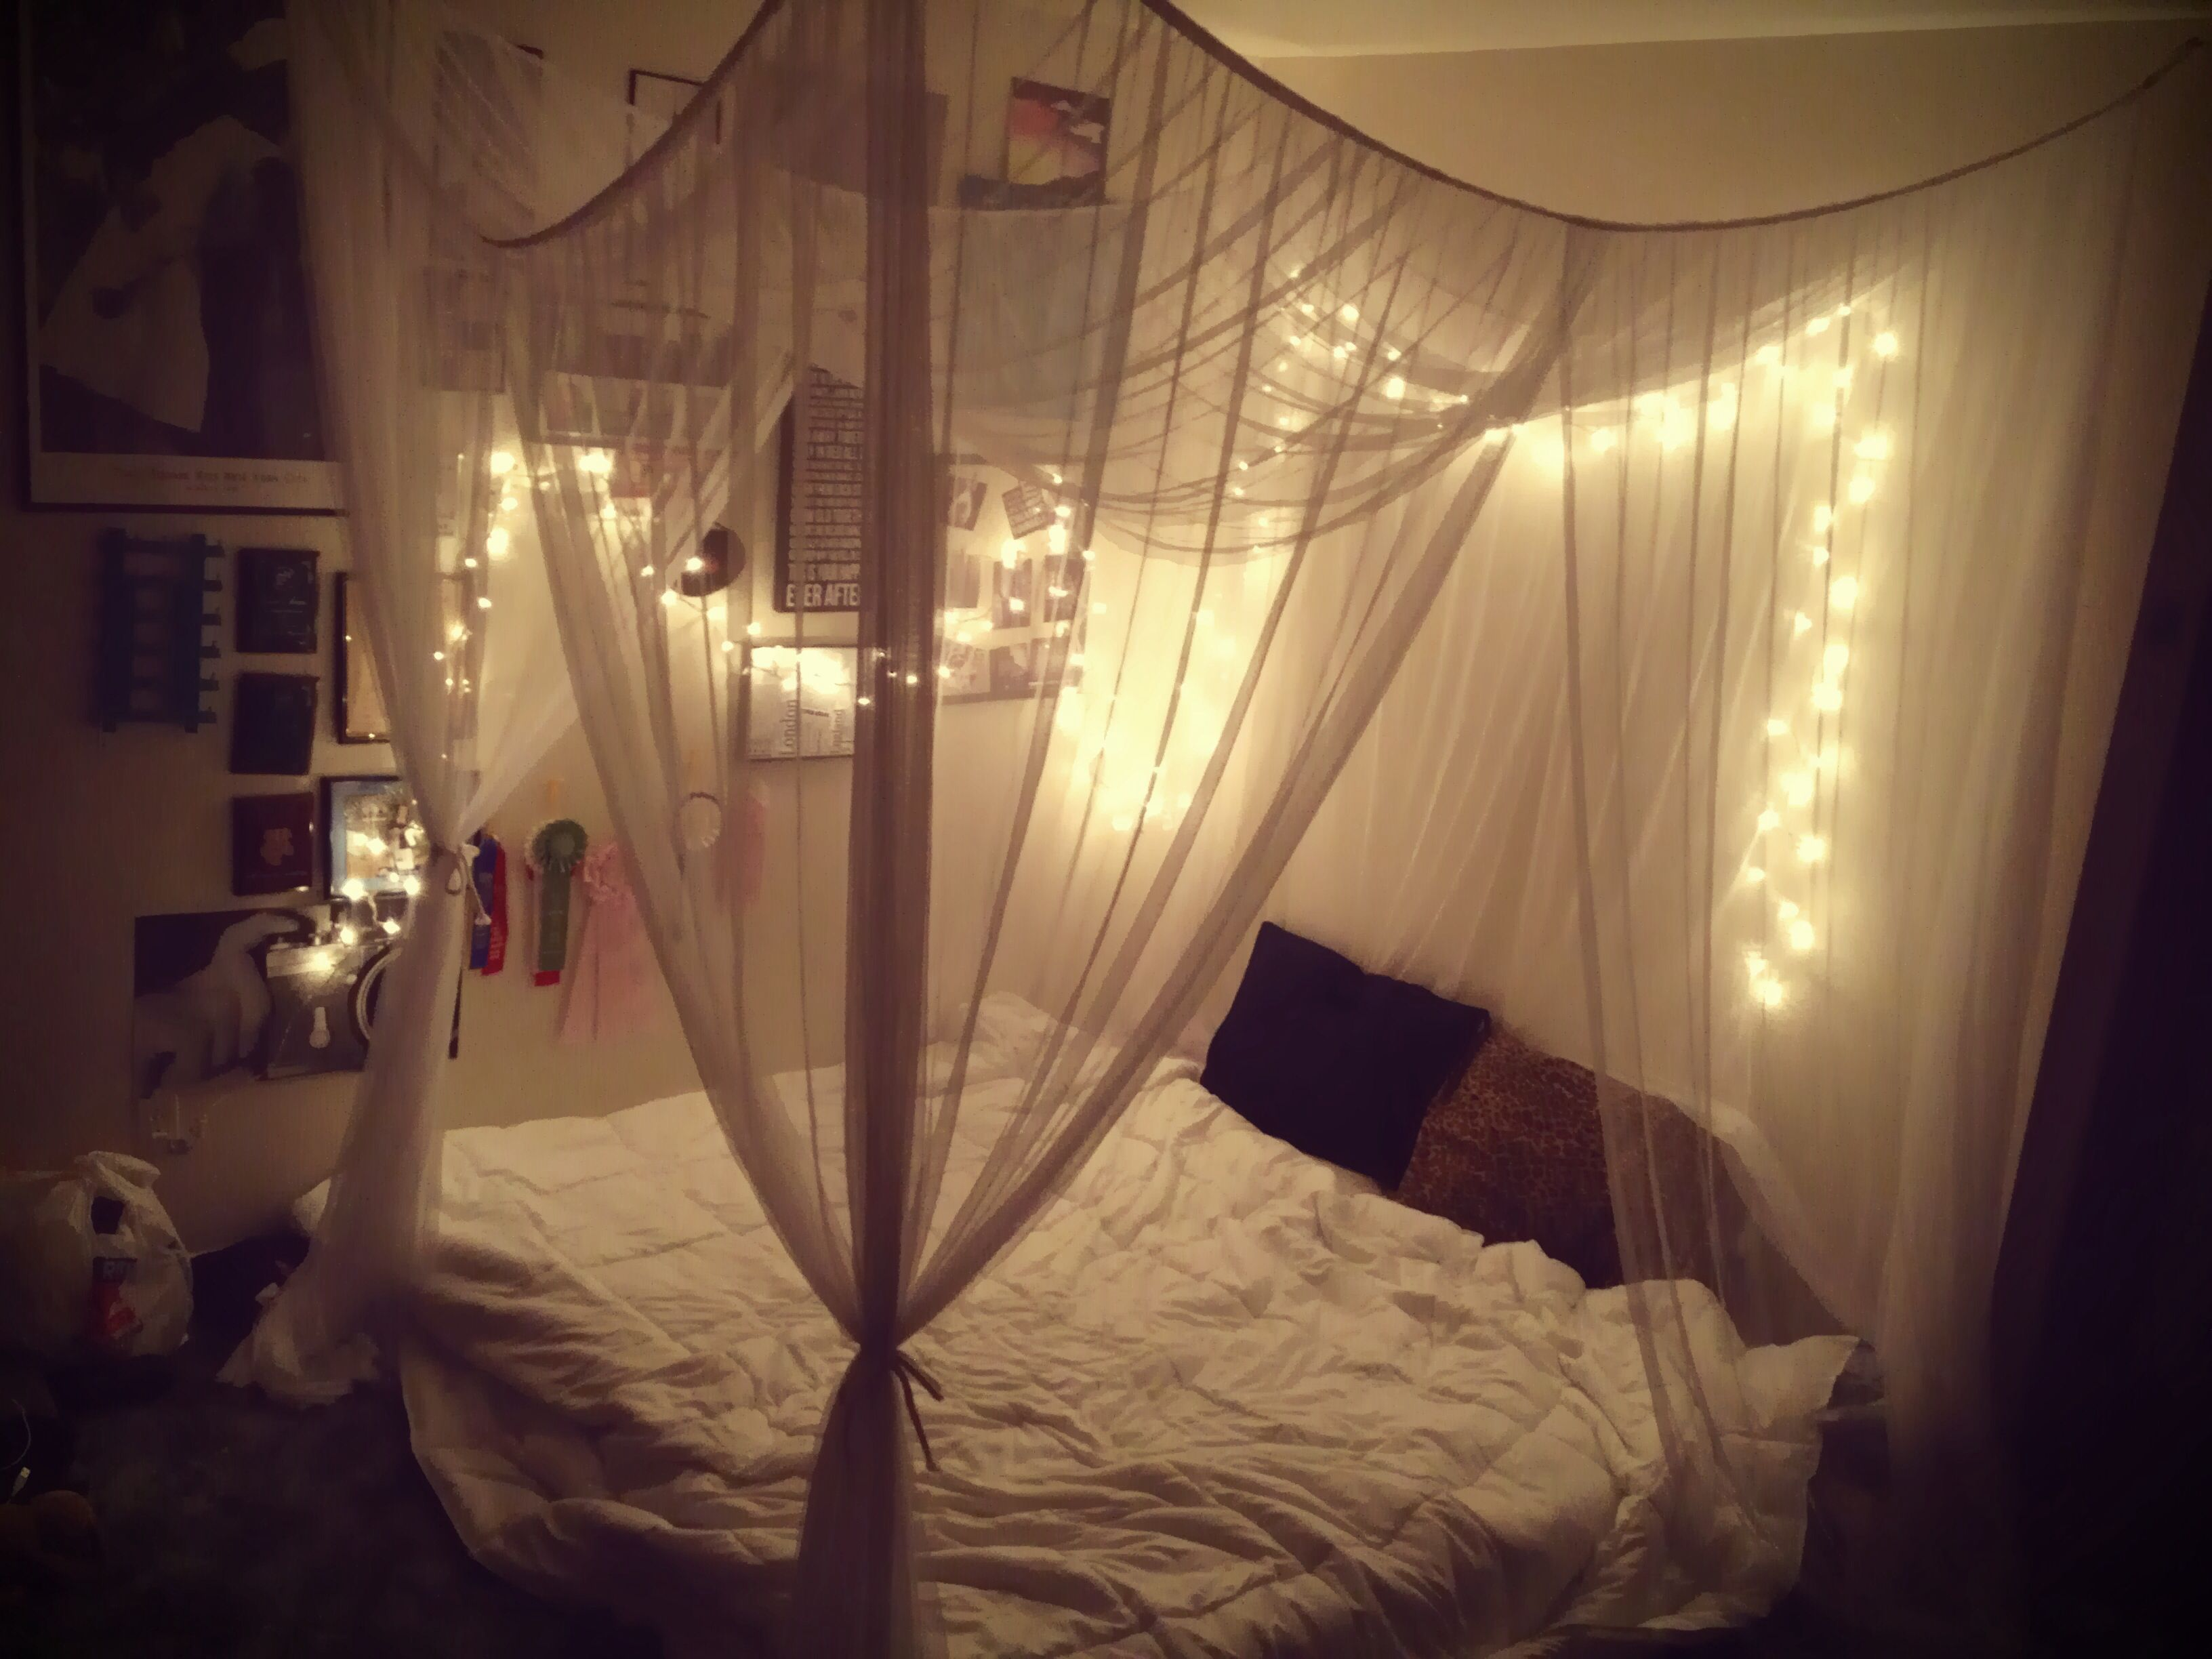 Bedroom fairy lights tumblr - Bedroom With Lighted Canopy Tumblr Bedroom Canopy Twinkle Lights